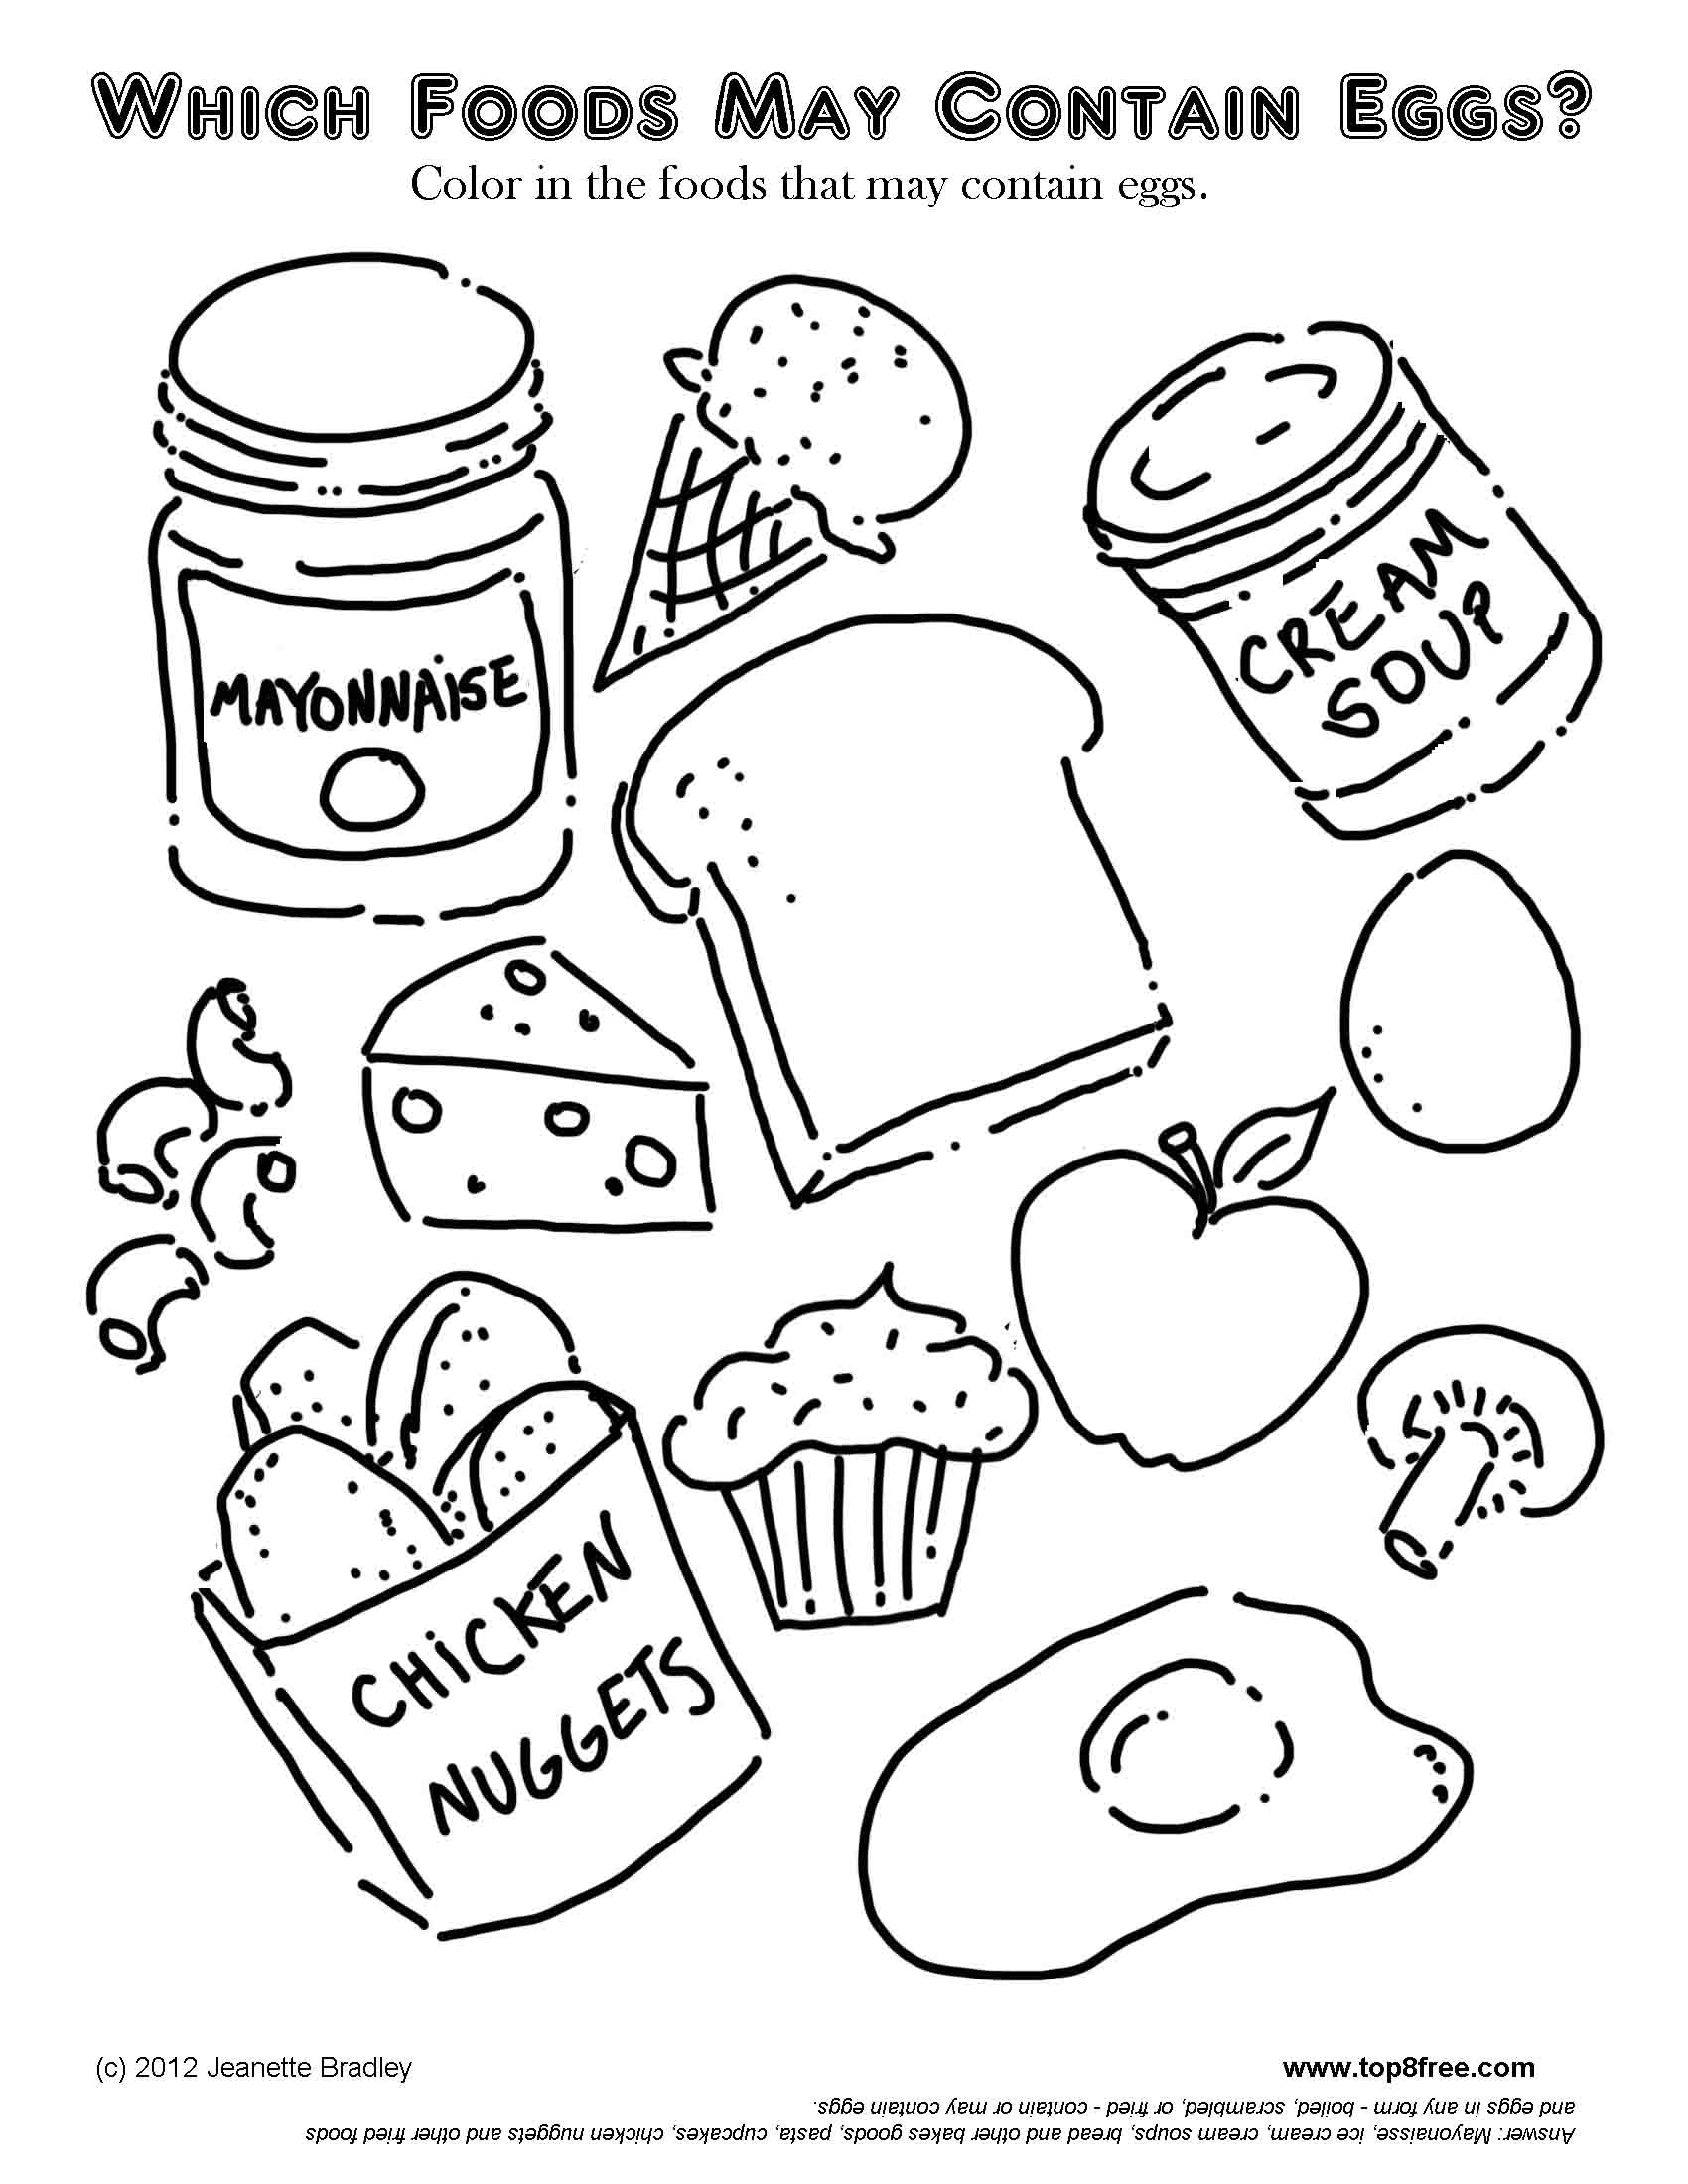 Food Containing Eggs Worksheet